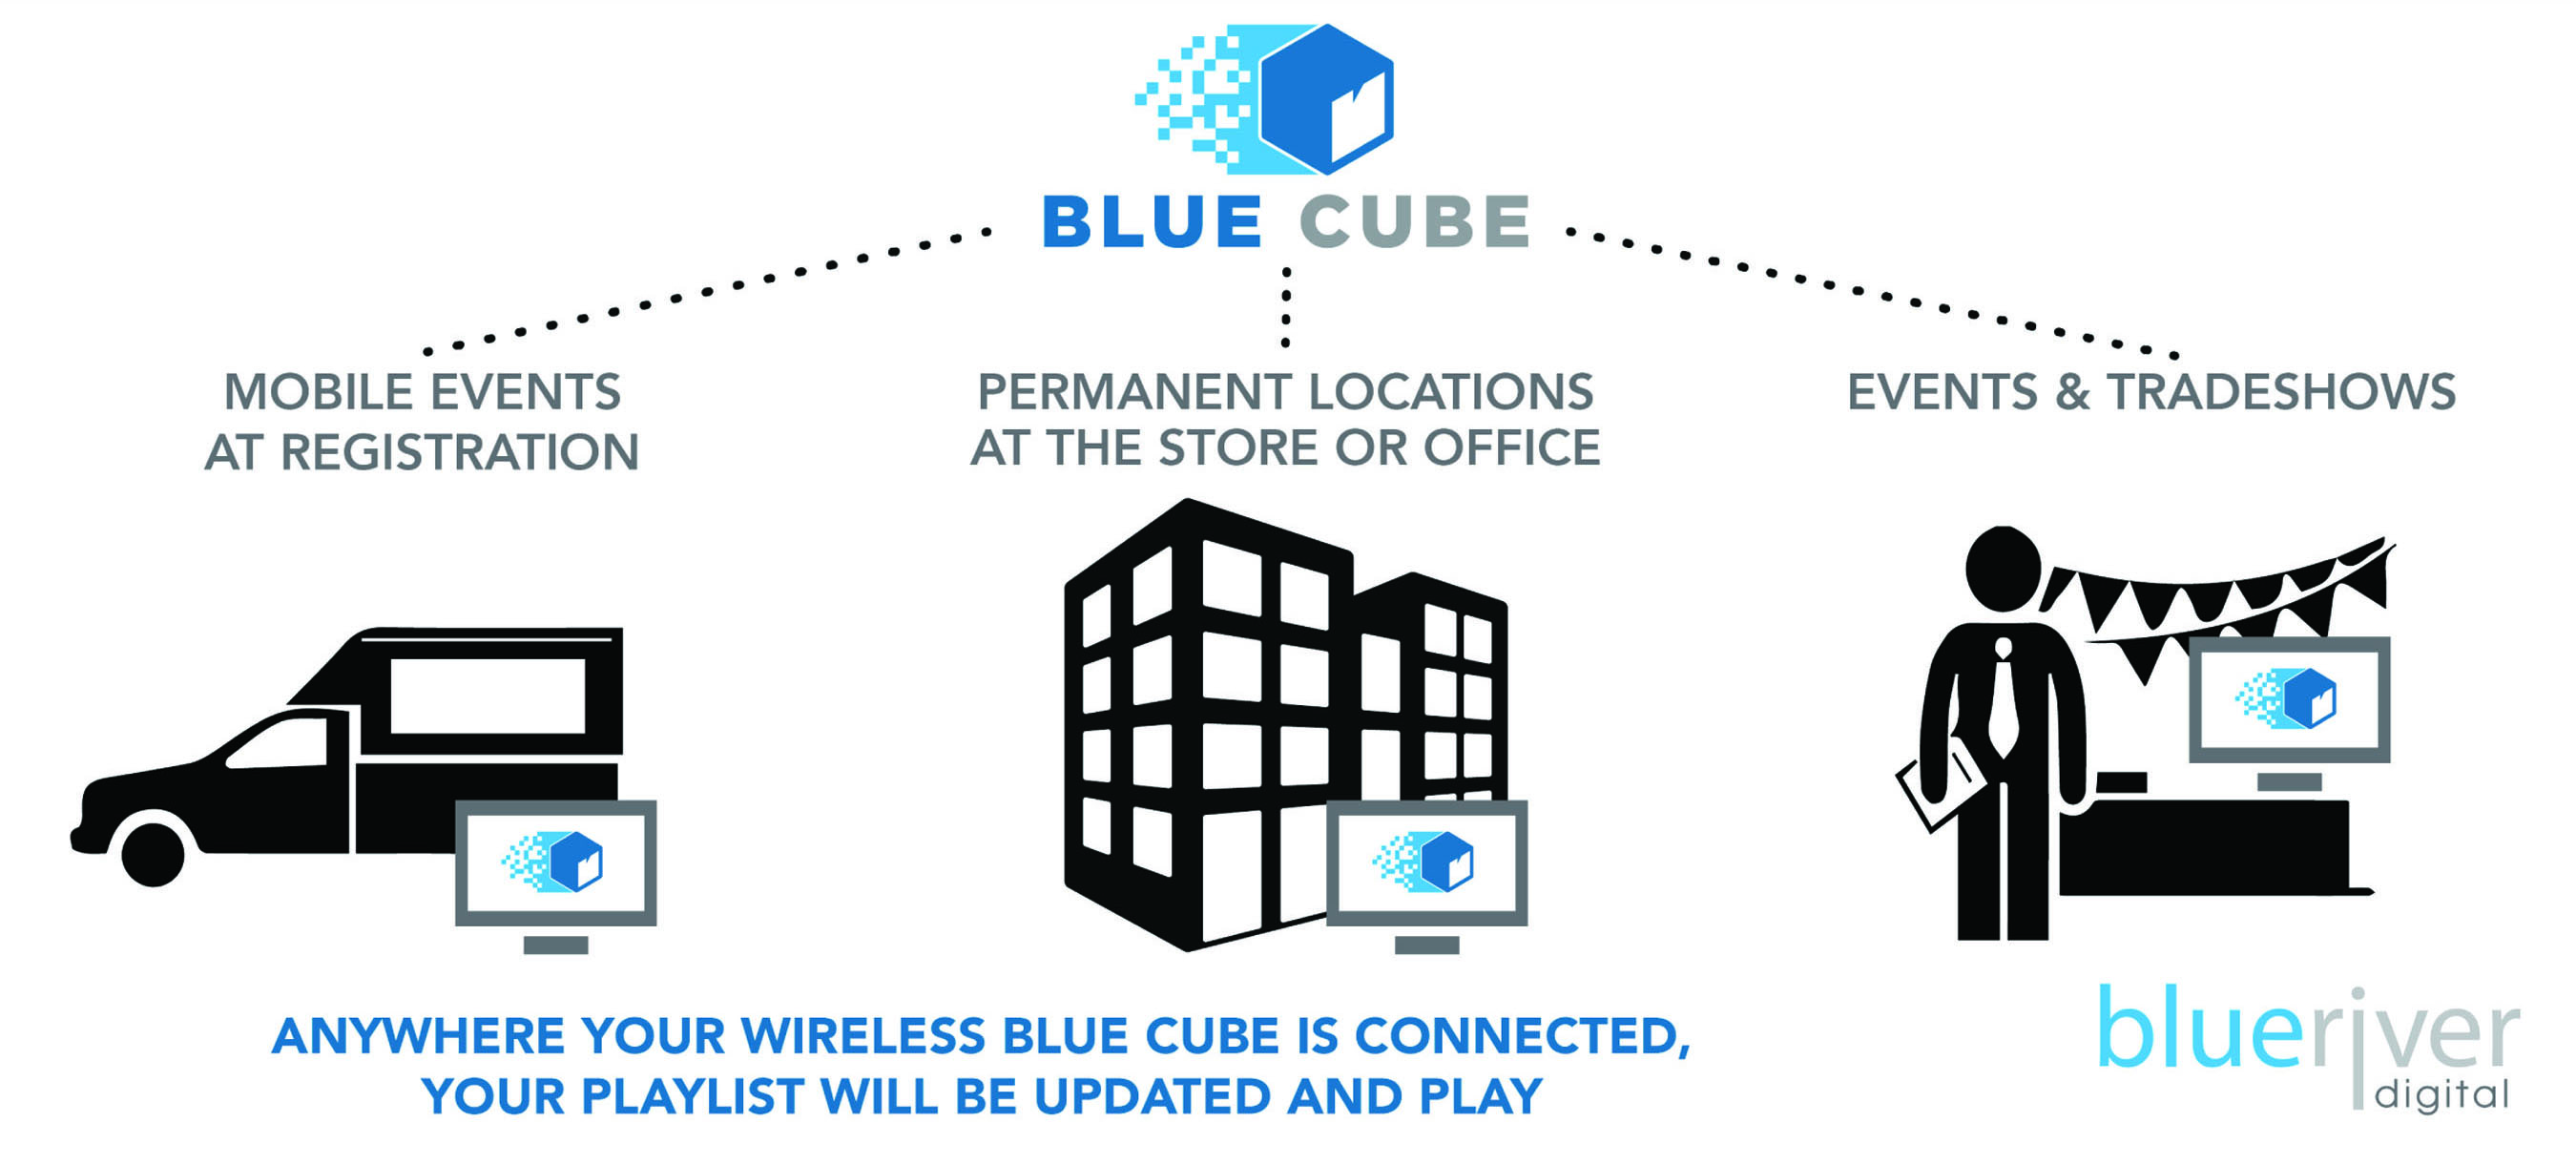 Blue Cube can be used in many locations